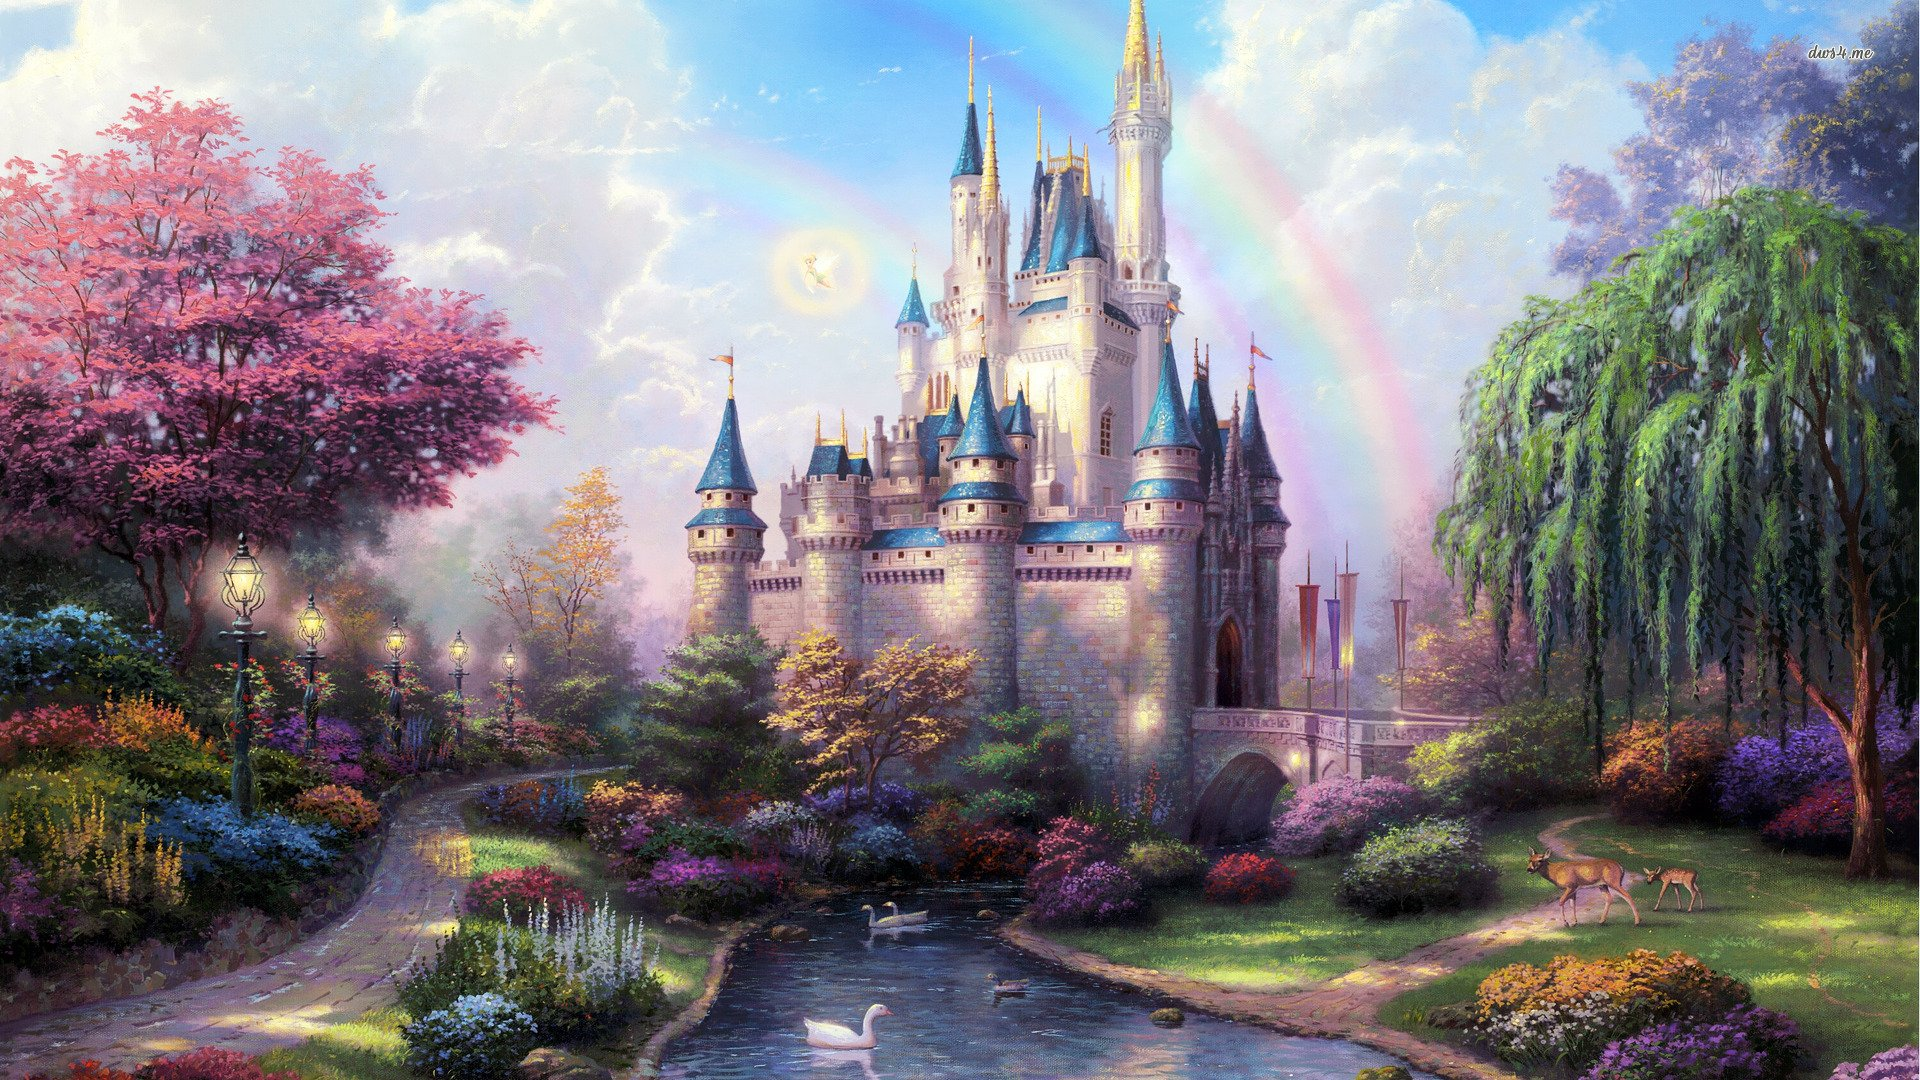 Fairy Tale Castle wallpaper Download High Resolution HD Wallpapers 1920x1080